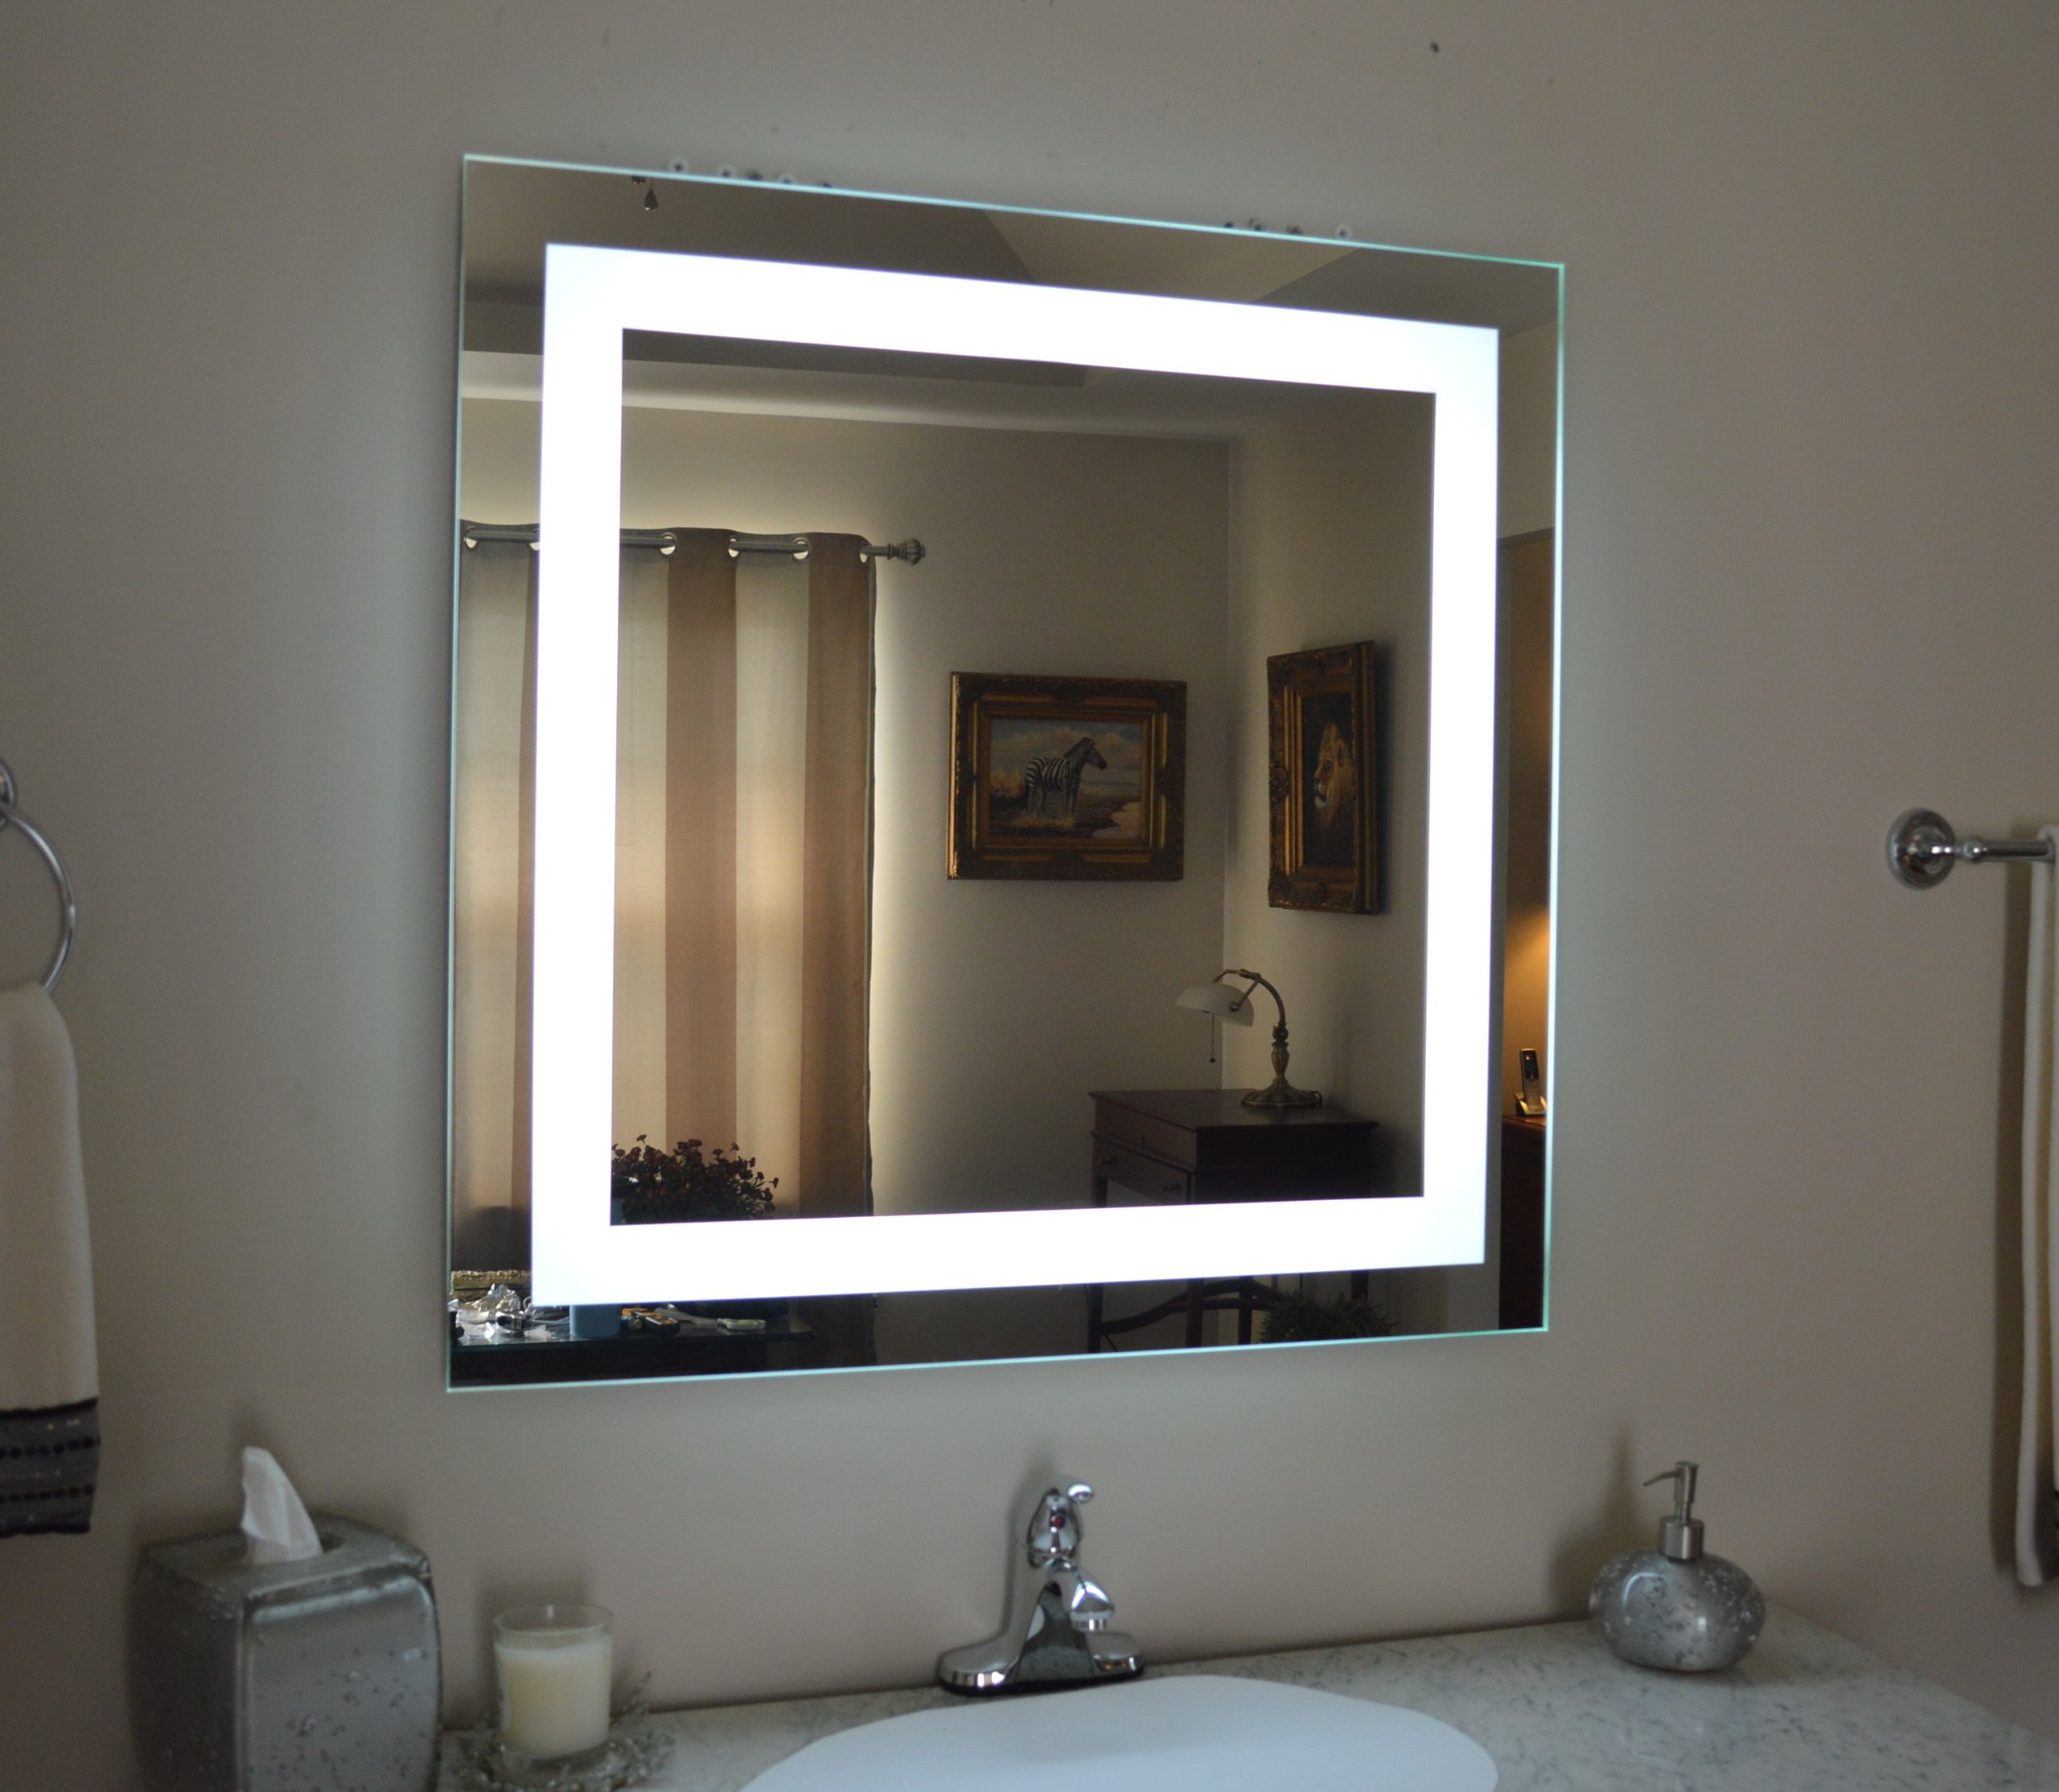 Wall Mounted Lighted Vanity Mirror MAM83232 Commercial Grade 32''x32''